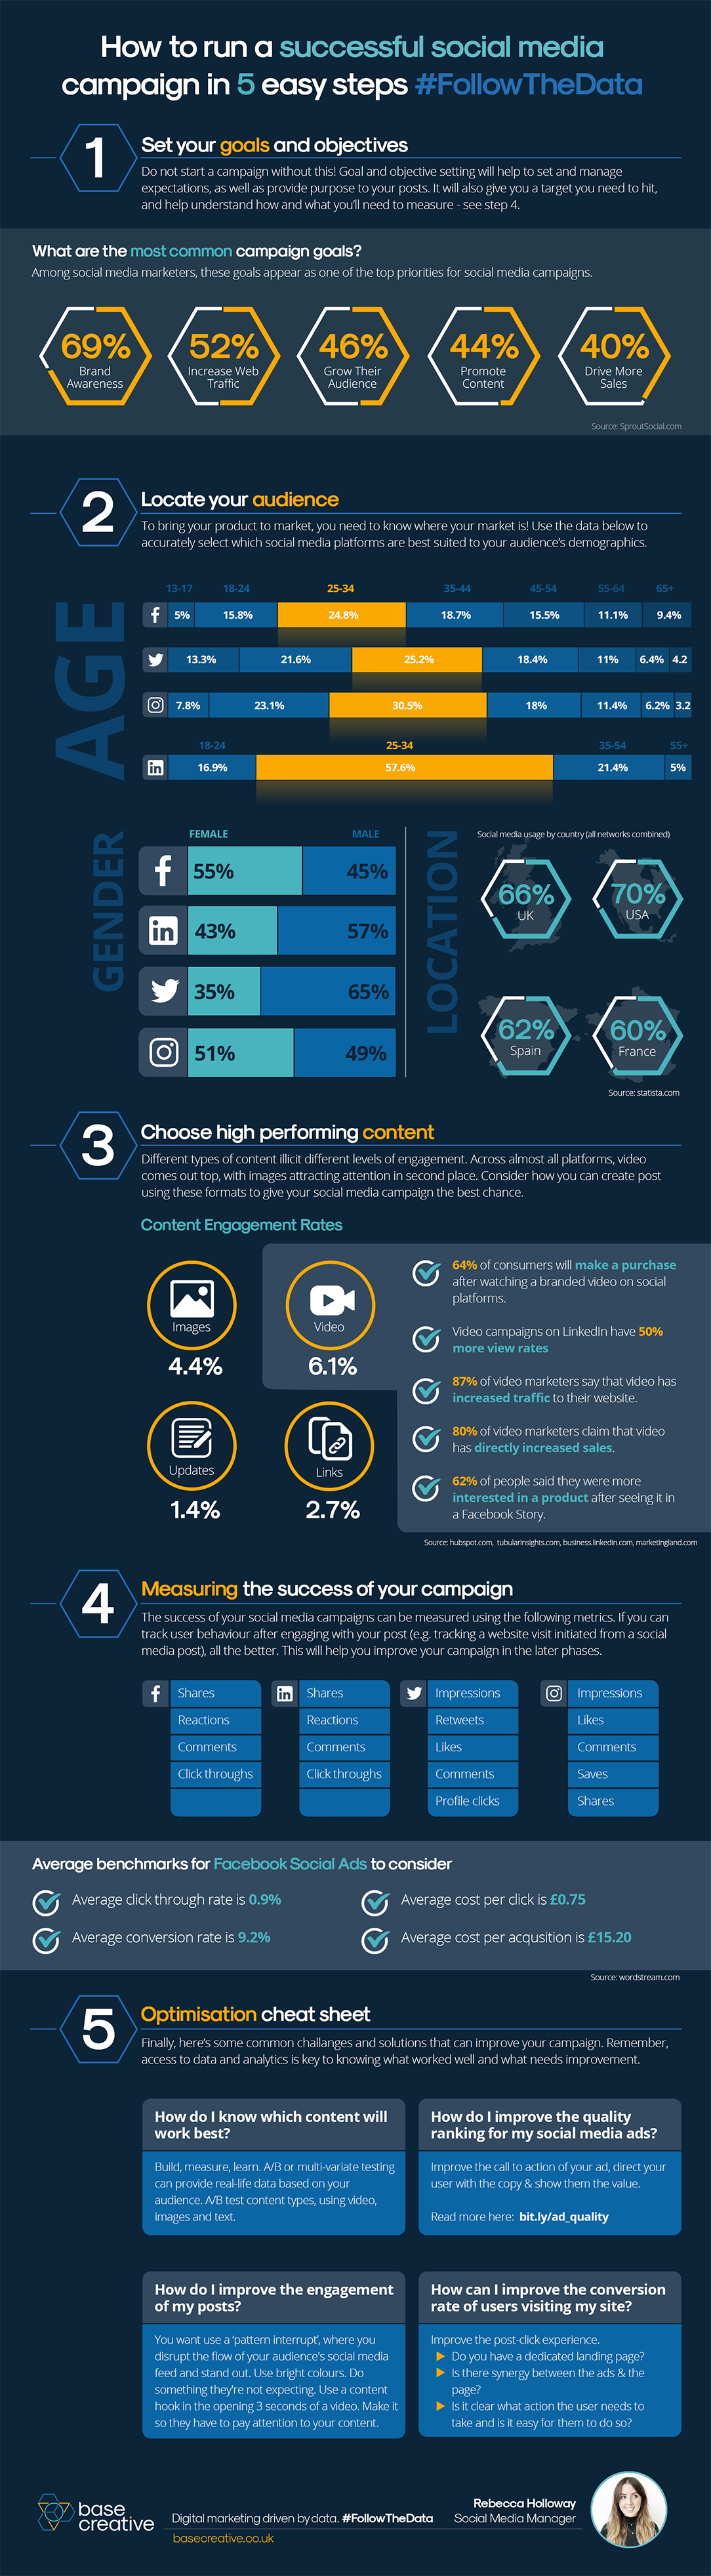 Social media campaign - infographic